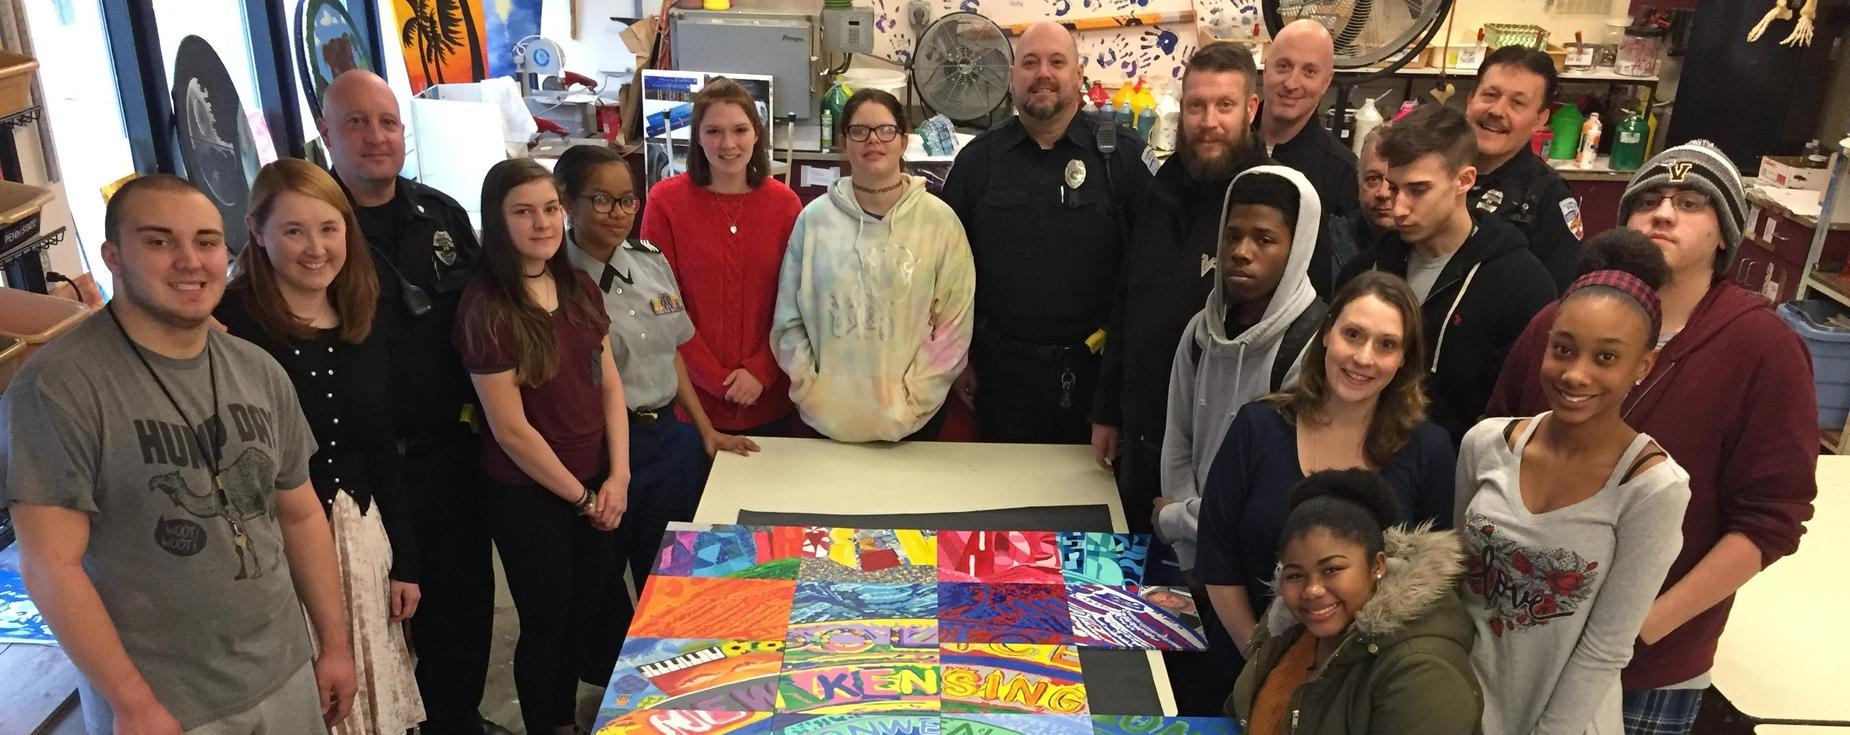 Group photo of the artists that created the Brian Shaw mural and members of the Arnold Police.